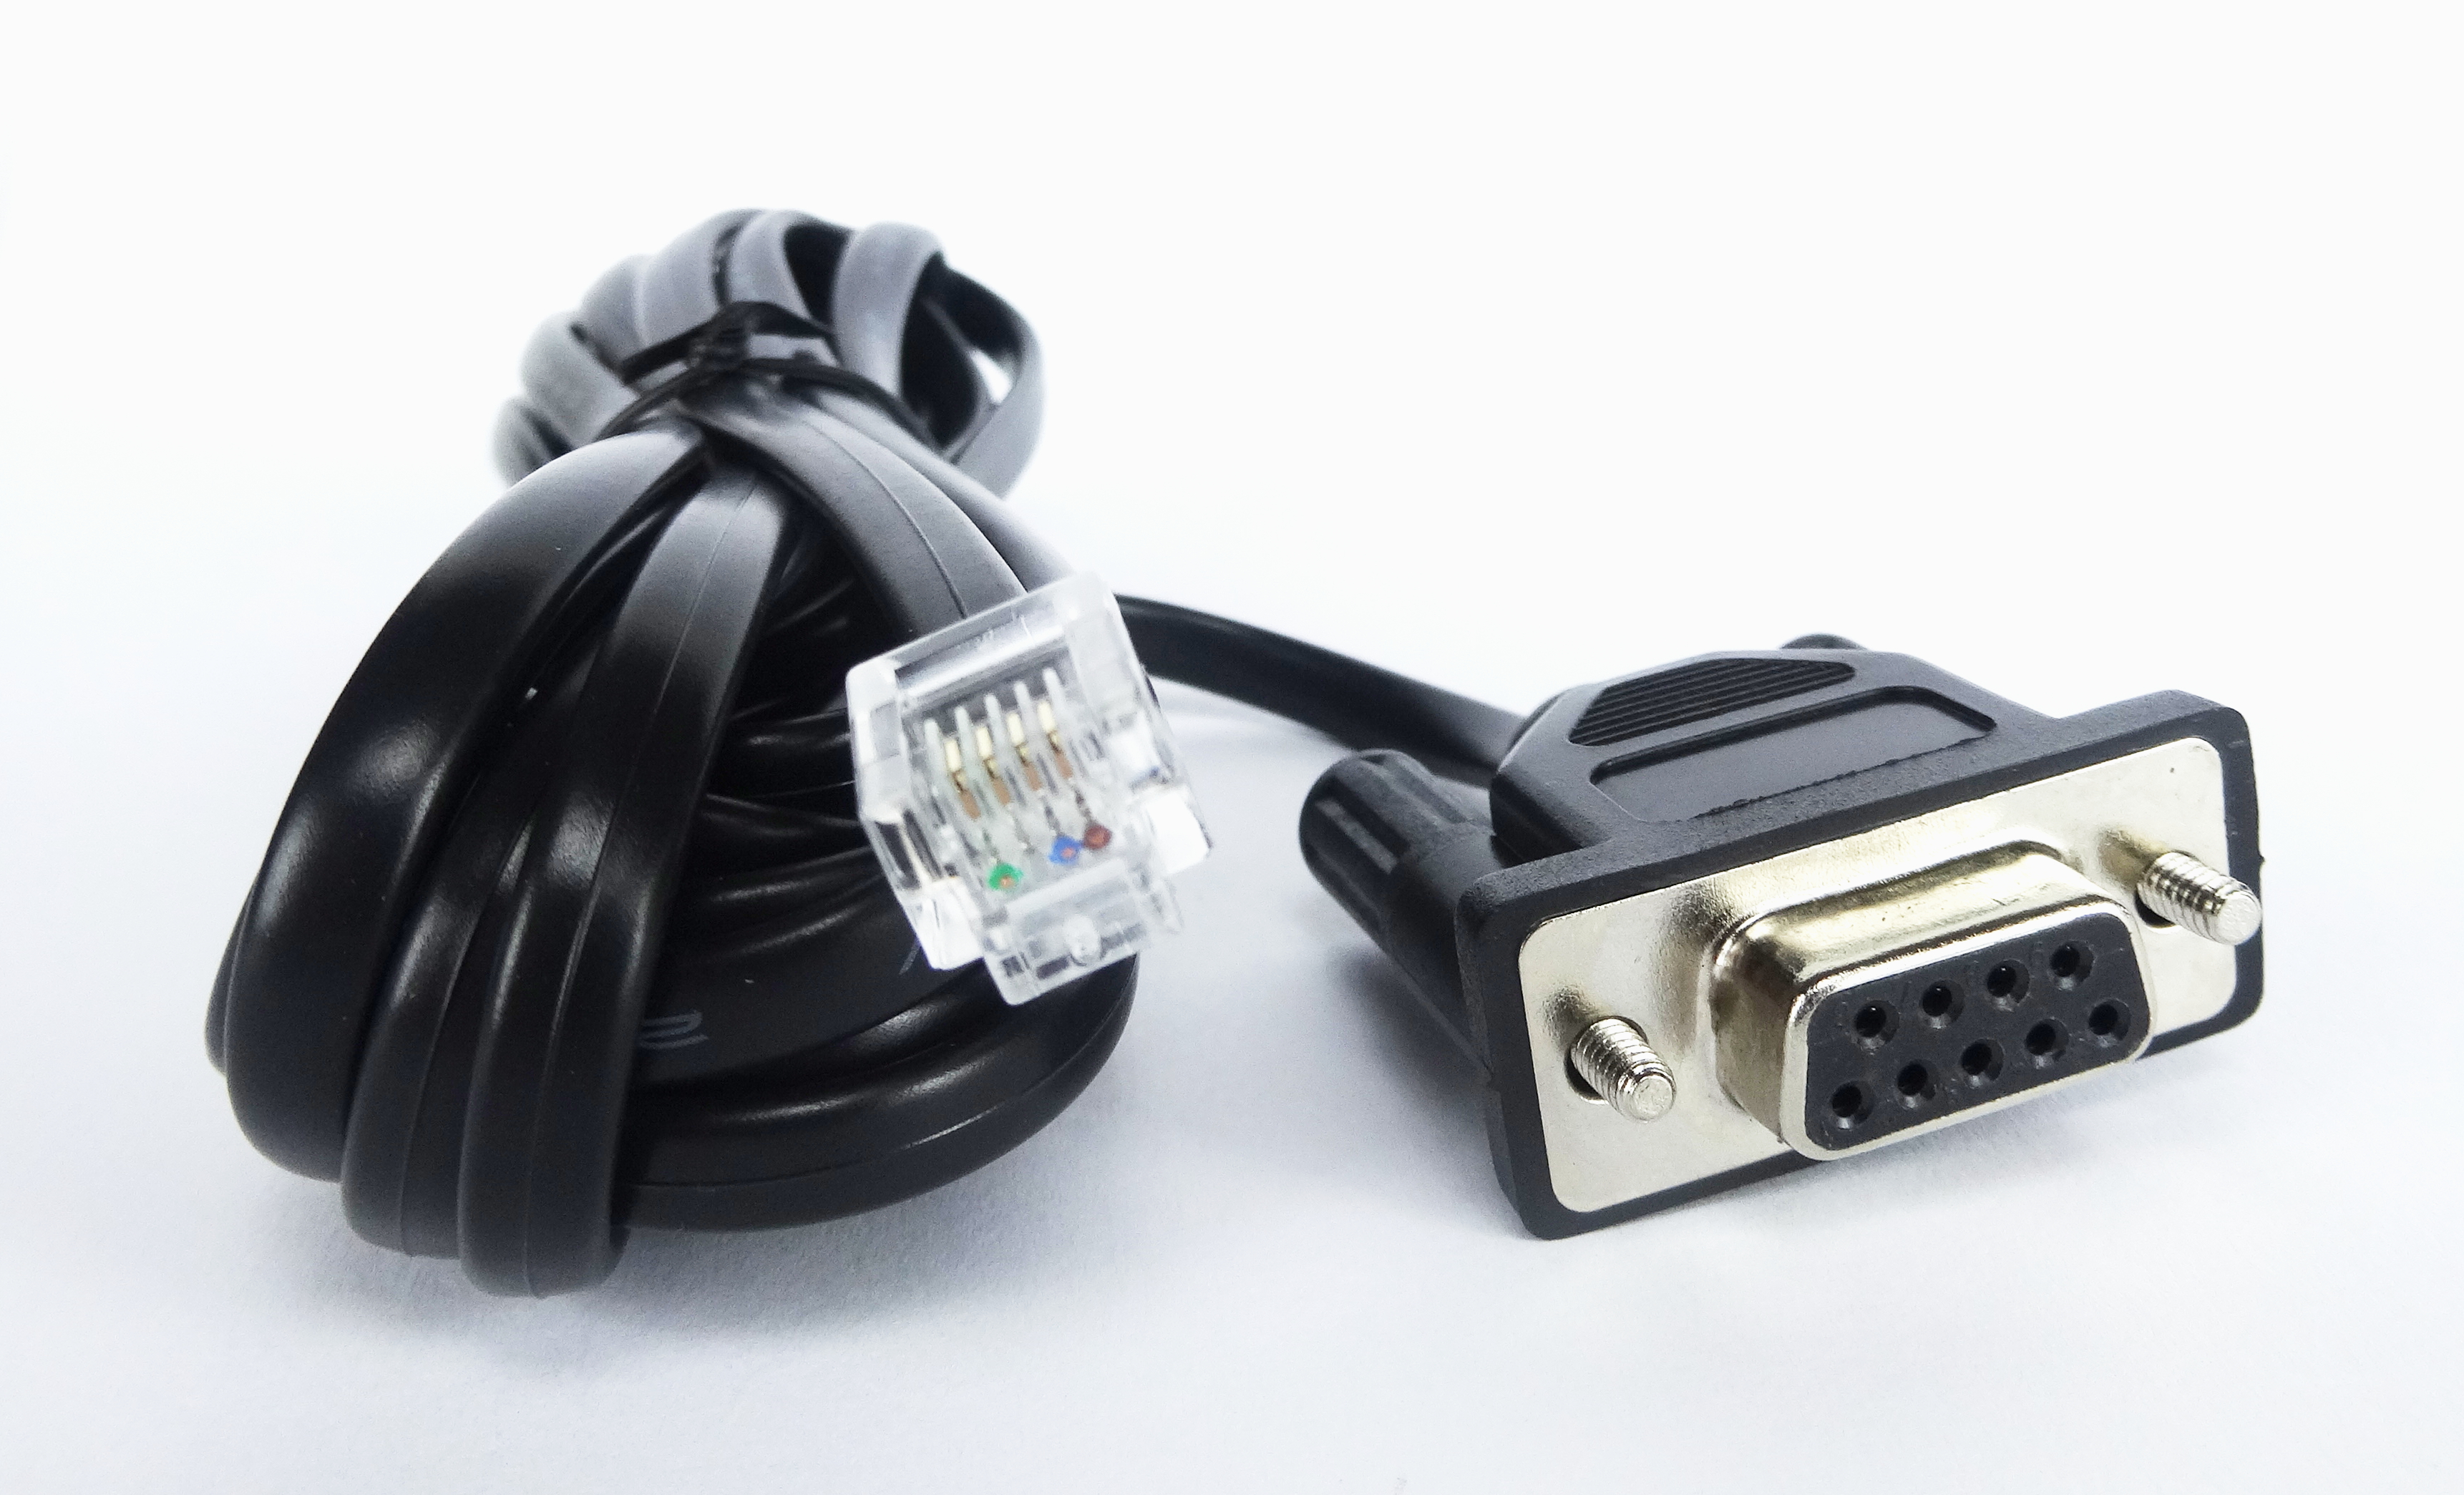 rs232 (9 pin (f)) to rj11 connector, Wiring diagram